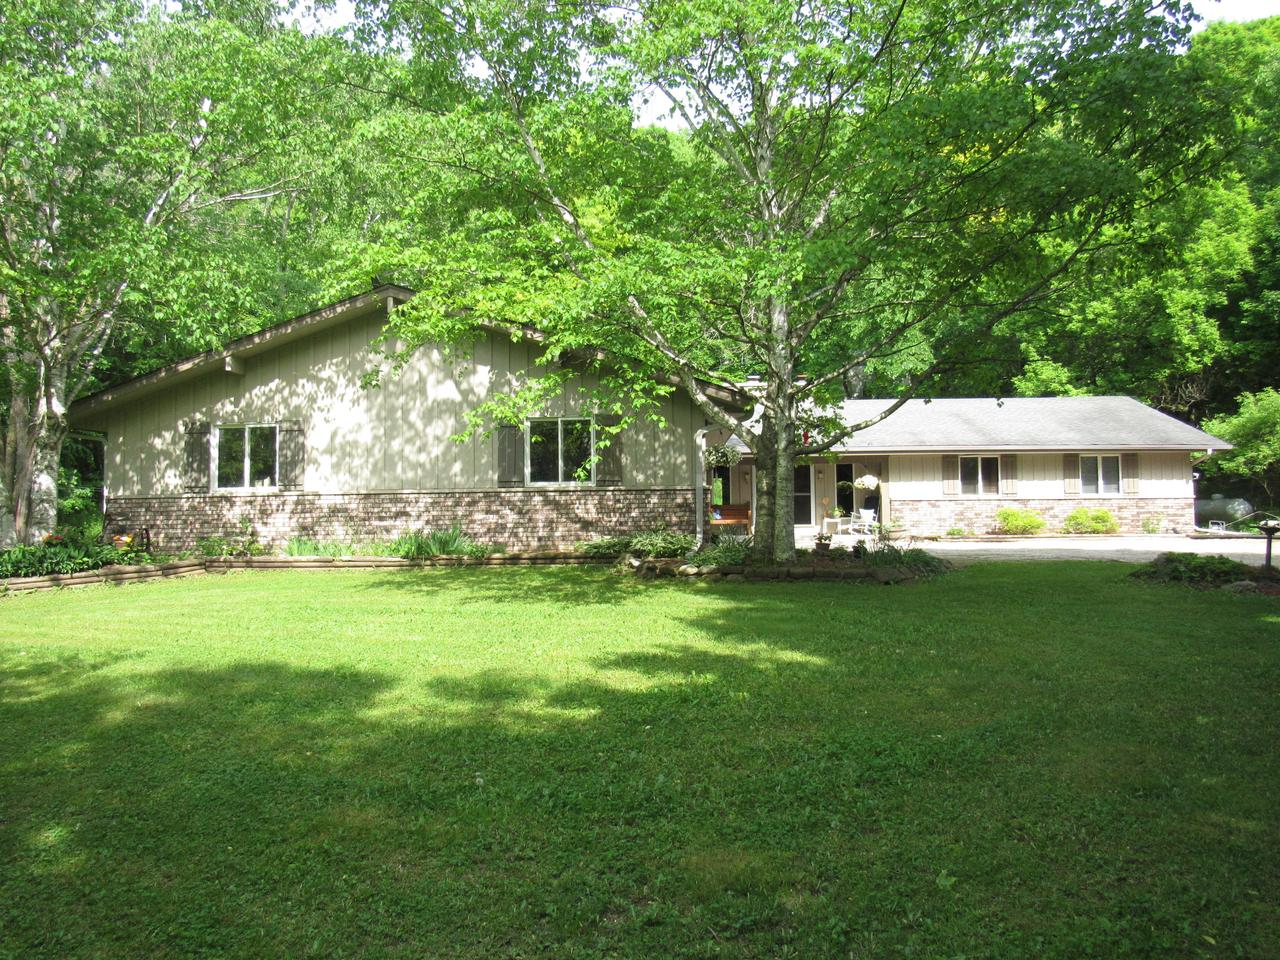 MOTIVATED SELLER  Very Spacious Country living. Very Private lot of land. 3 car garage with room for 6, Large  unfinished basement gives you and open canopy to create your own dream. Open concept with nice sized bedrooms and a private full master bathroom. Approximate 25x30 poll barn. First floor laundry room. Minutes from Hartford, Hartland ,Sussex.